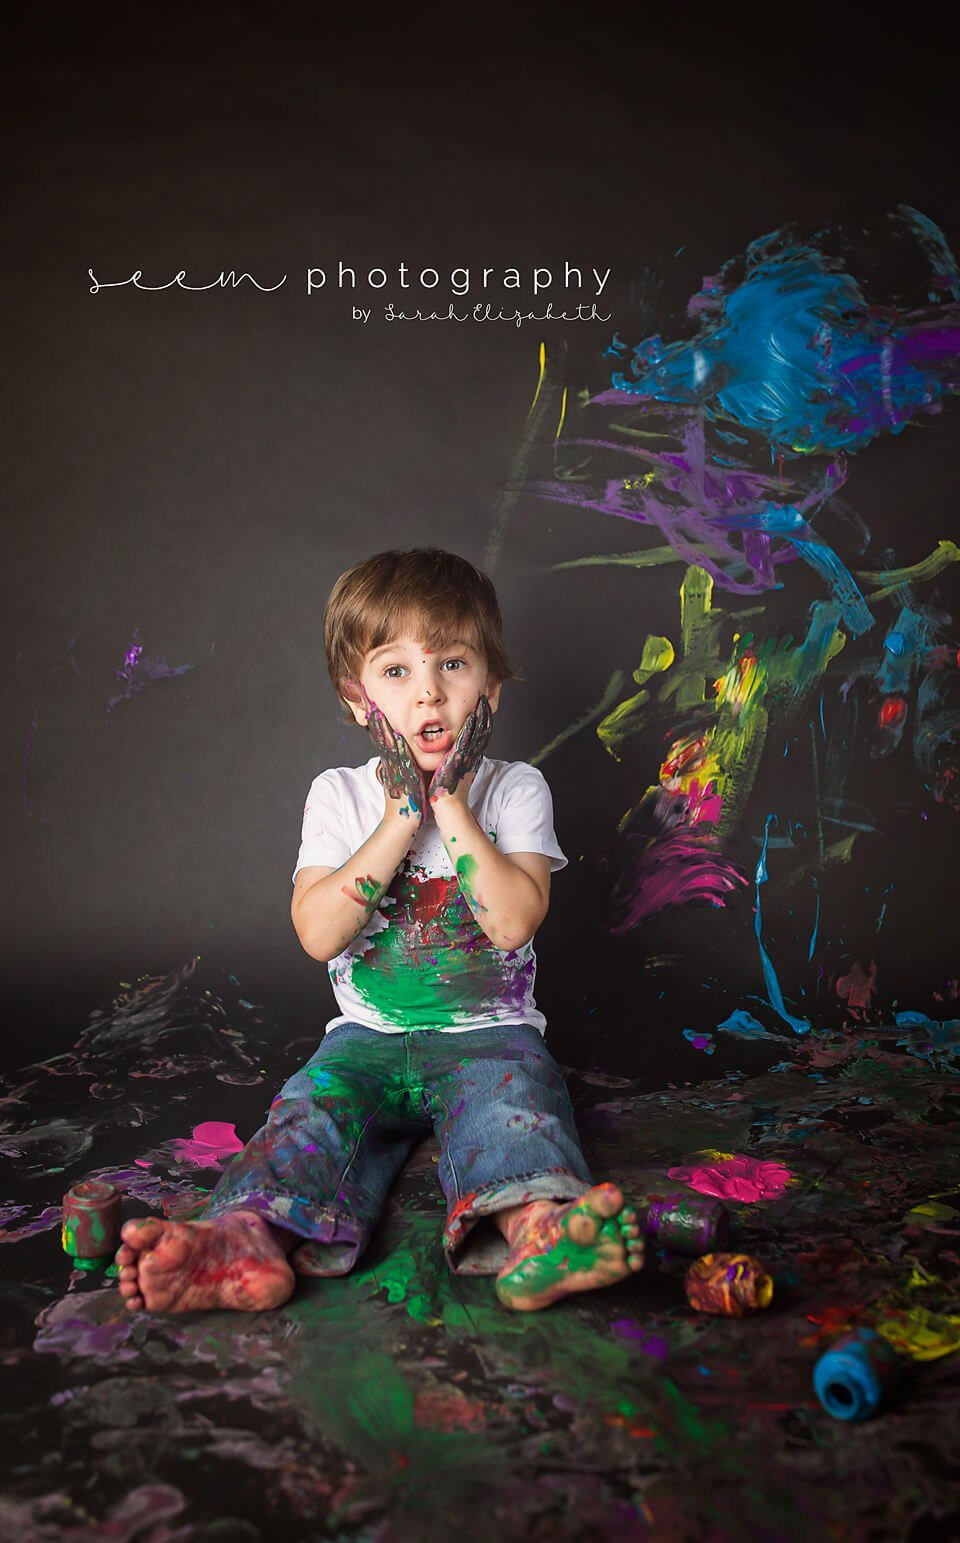 SEEM photography OH NO! Paint Smash